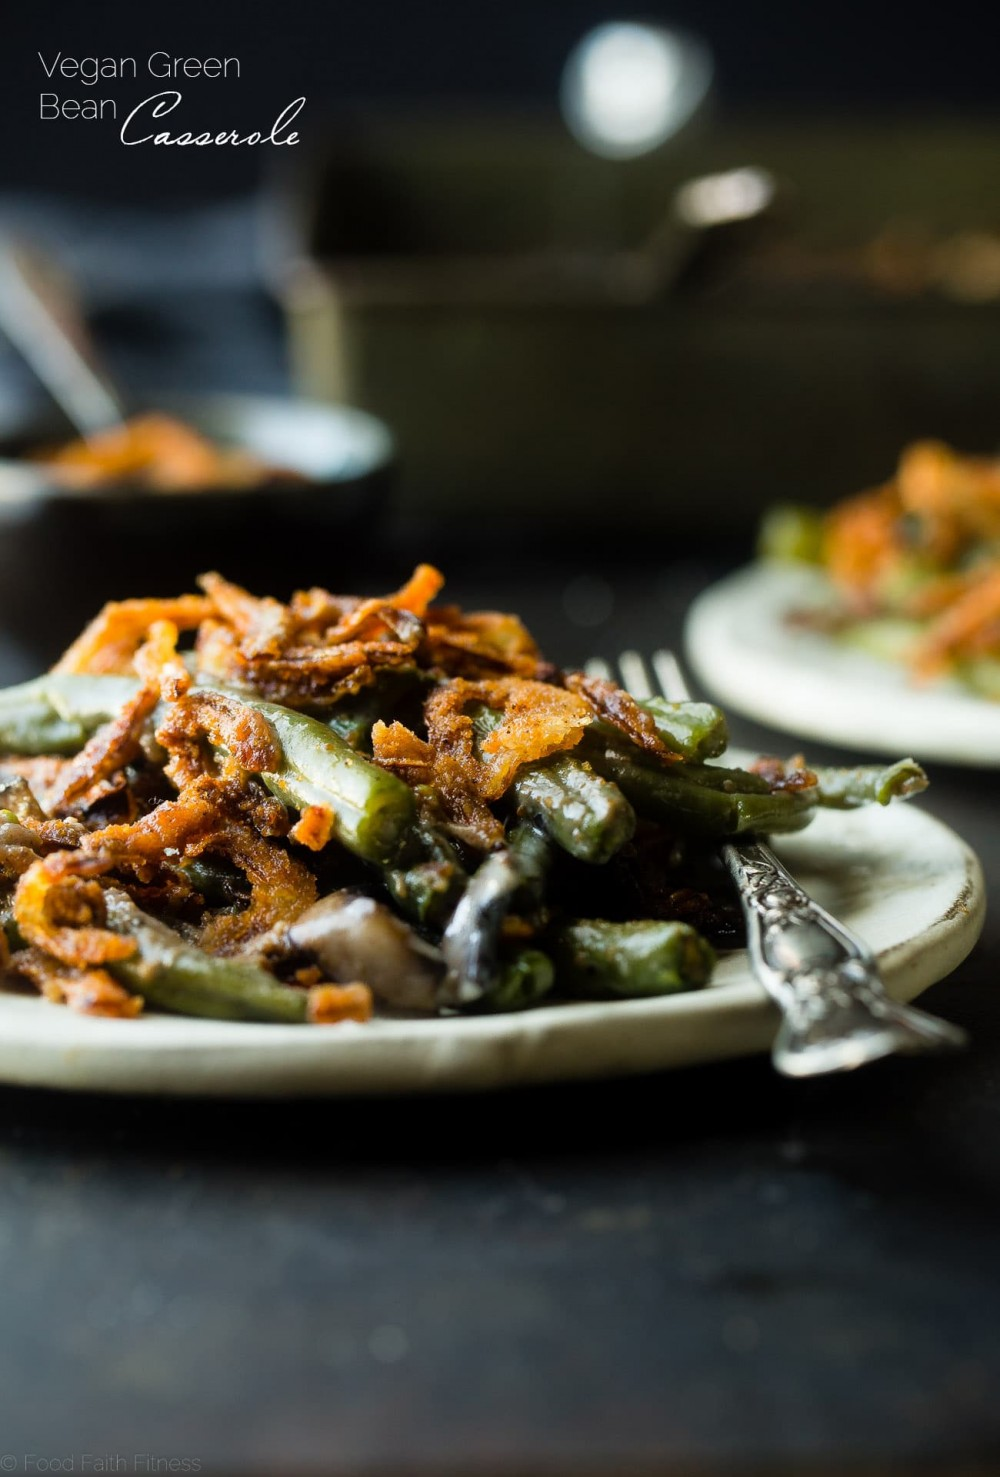 Healthy Vegan Green Bean Casserole by Taylor Kiser | Epicurious ...